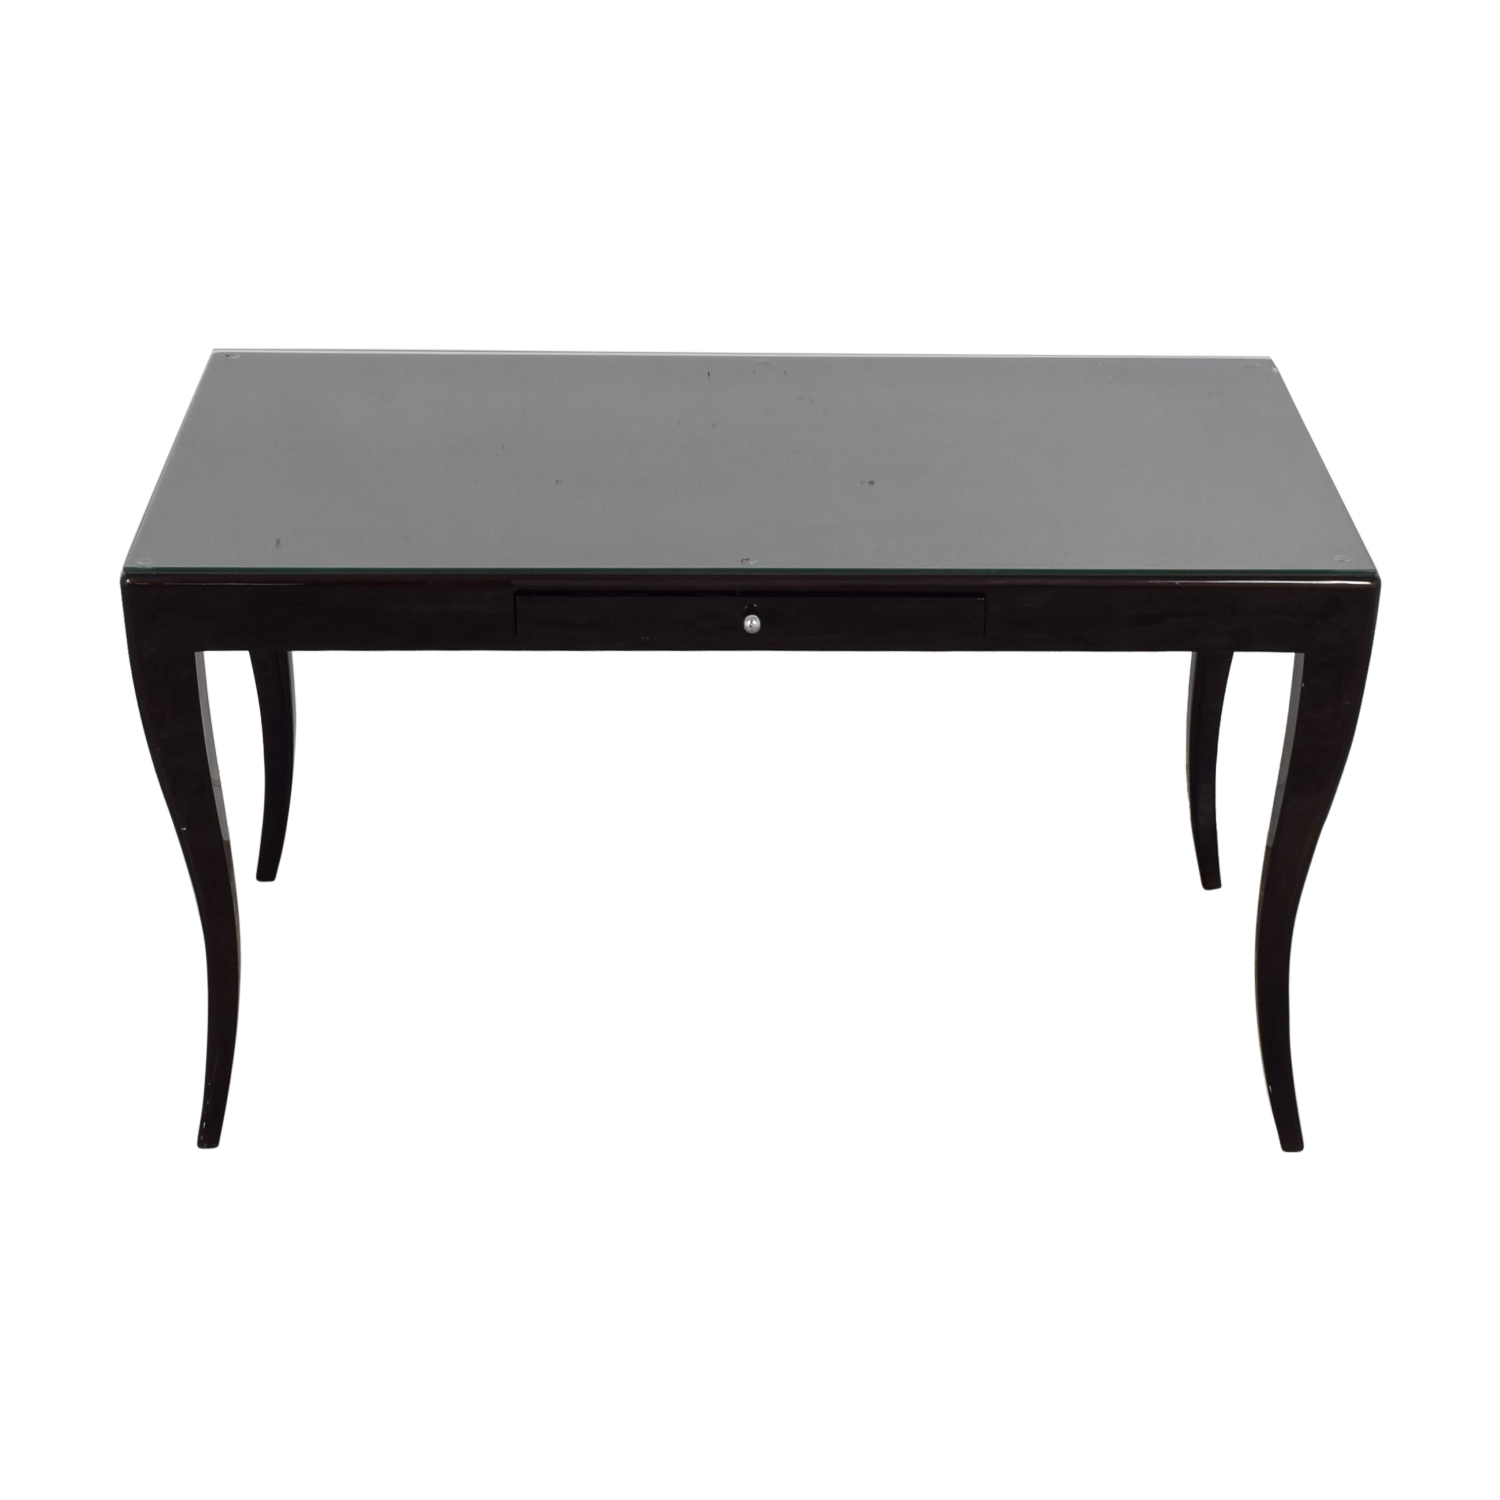 Kravet Kravet Single Drawer Black Wood Desk with Glass Protector coupon